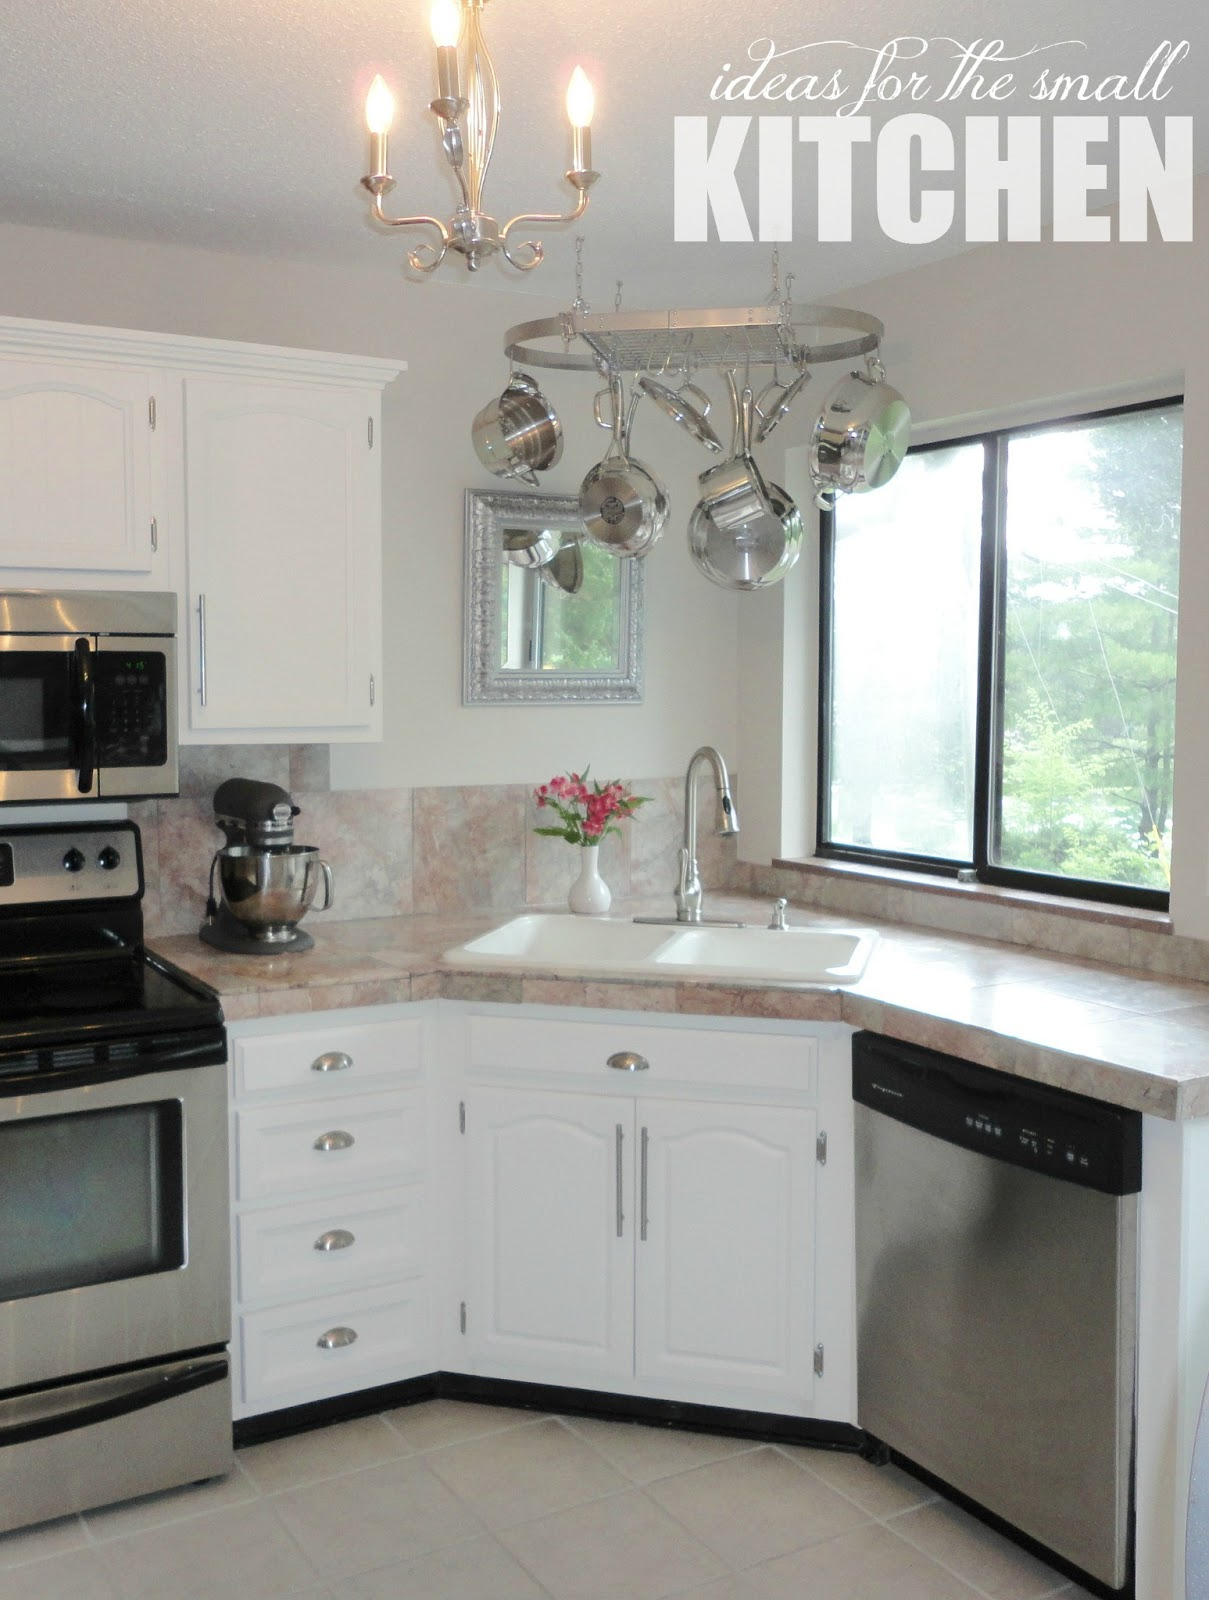 Livelovediy the kitchen to do list progress report - Kitchen designs with corner sinks ...